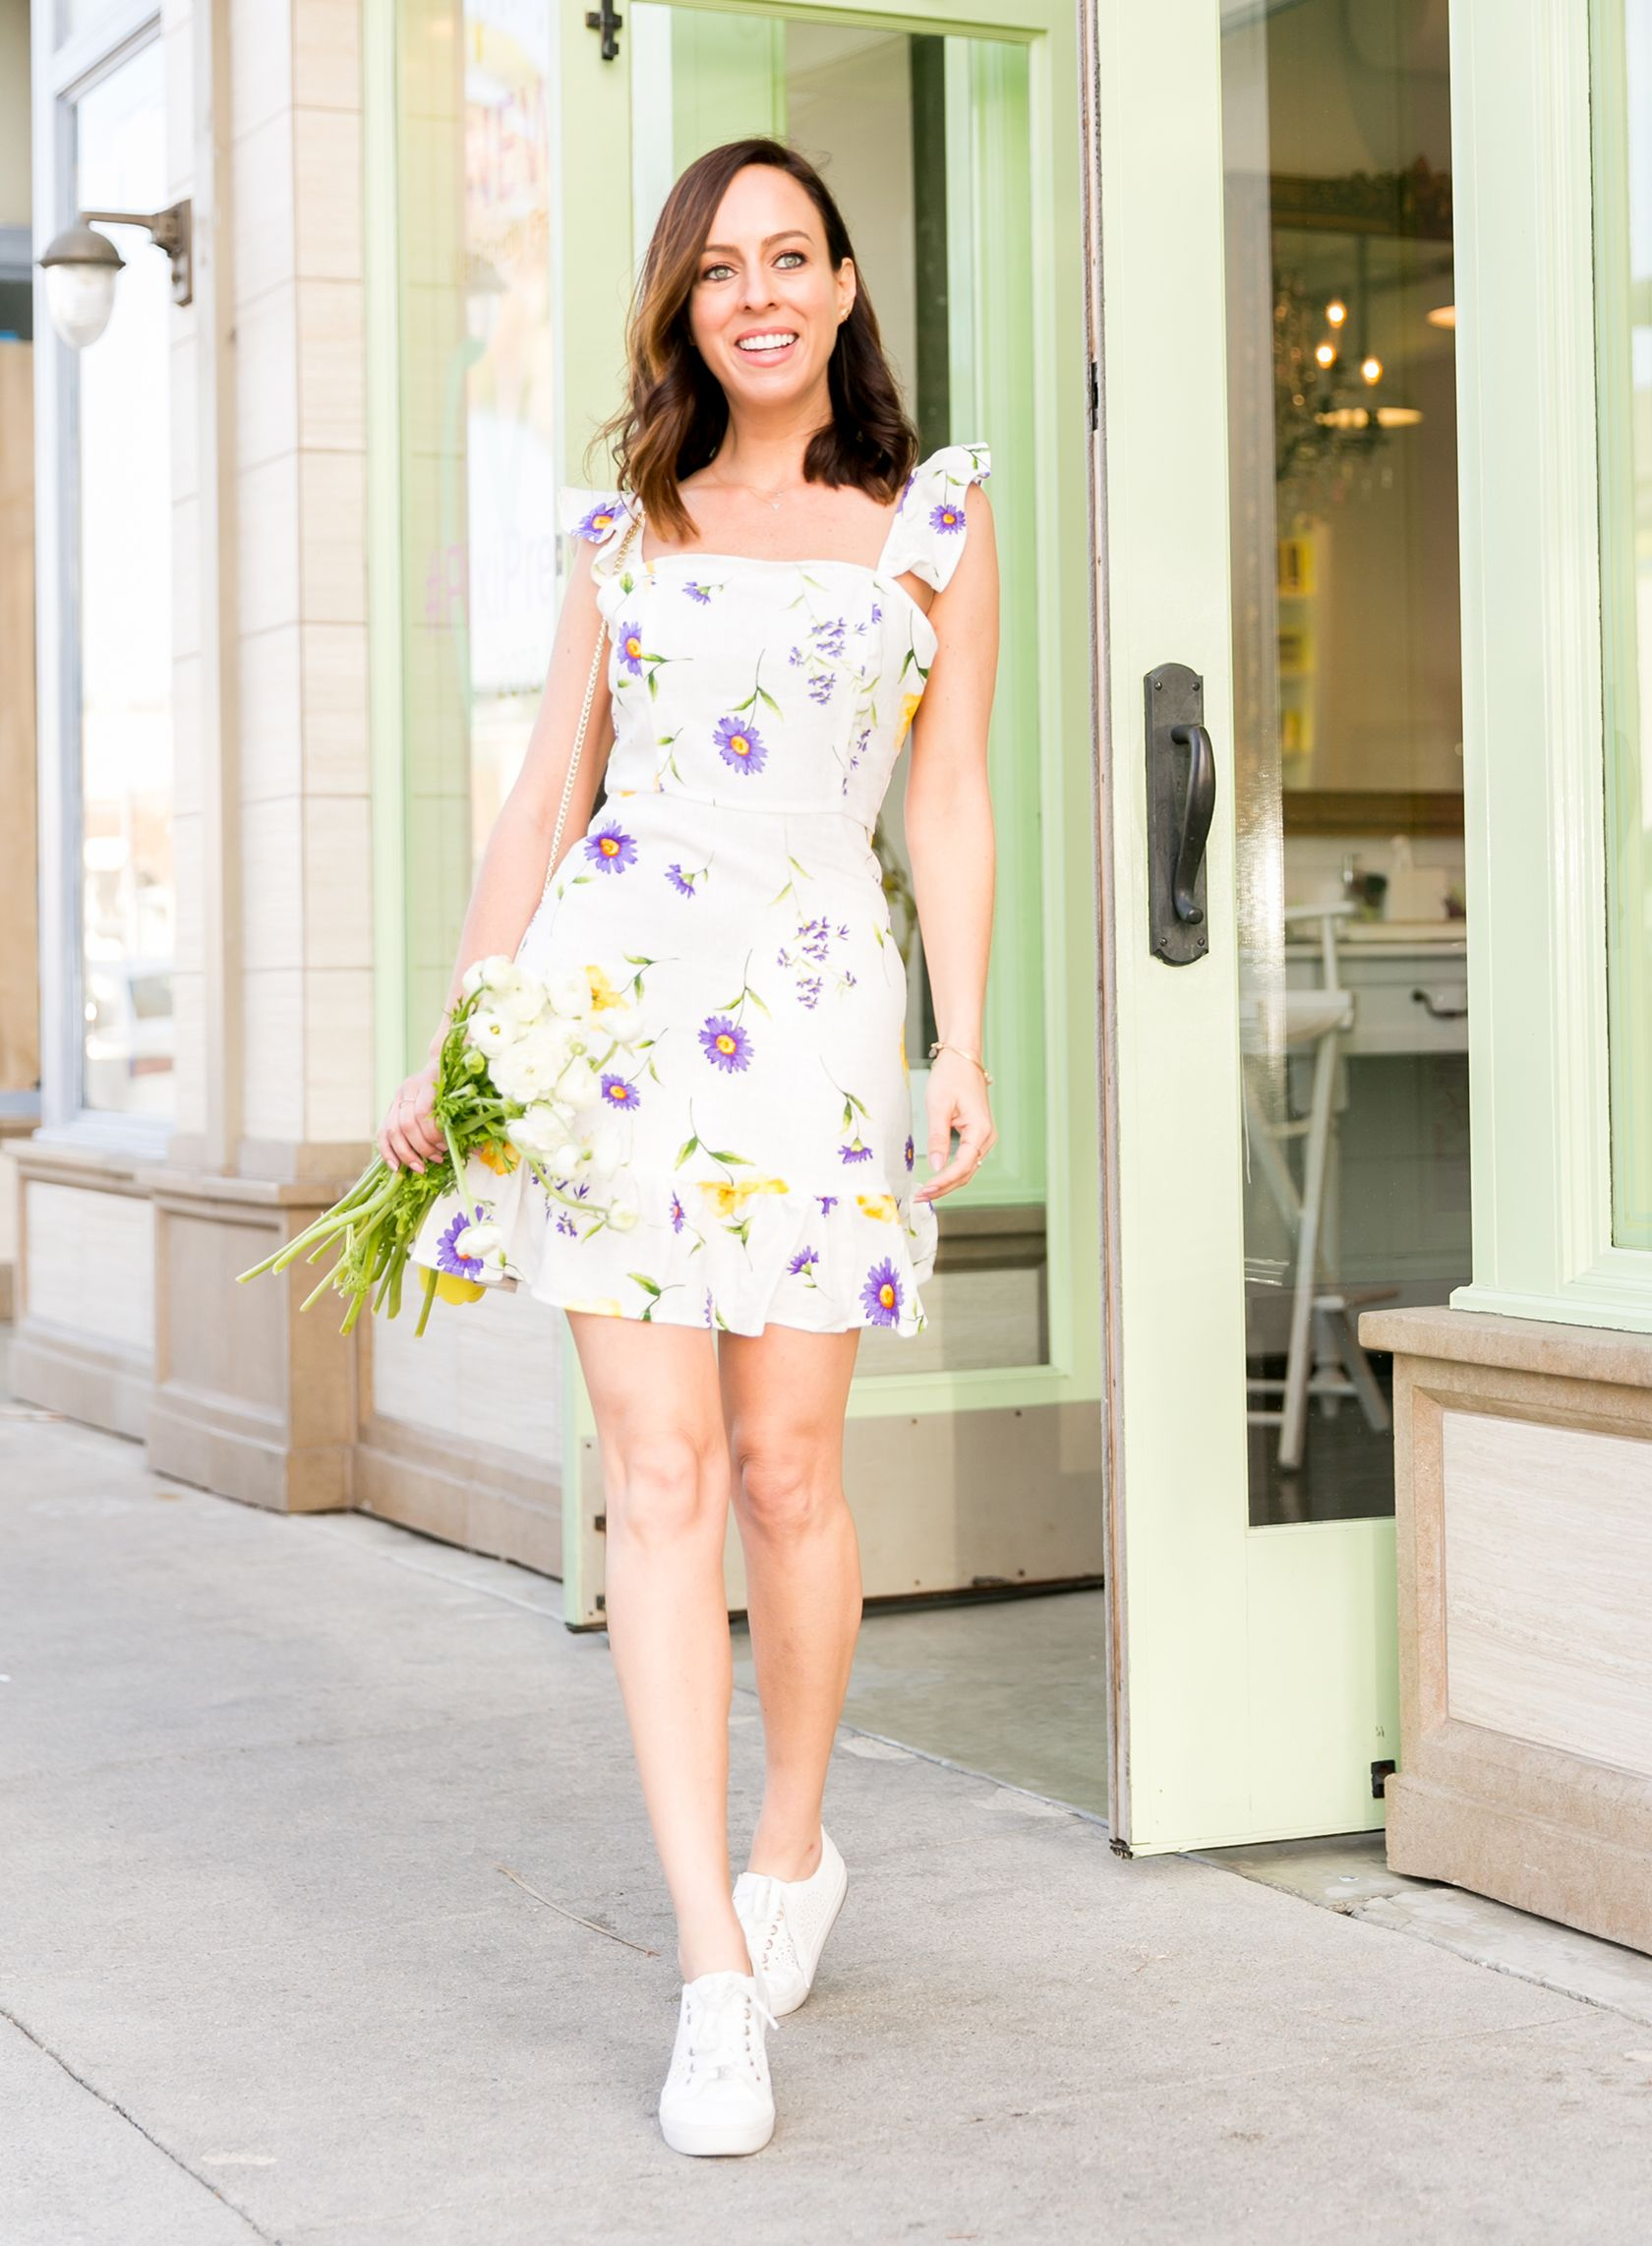 842076266f3 Sydne Style shows cute outfit ideas in white sneakers with forever 21  floral dress  florals  sneakers  dresses  outfitideas